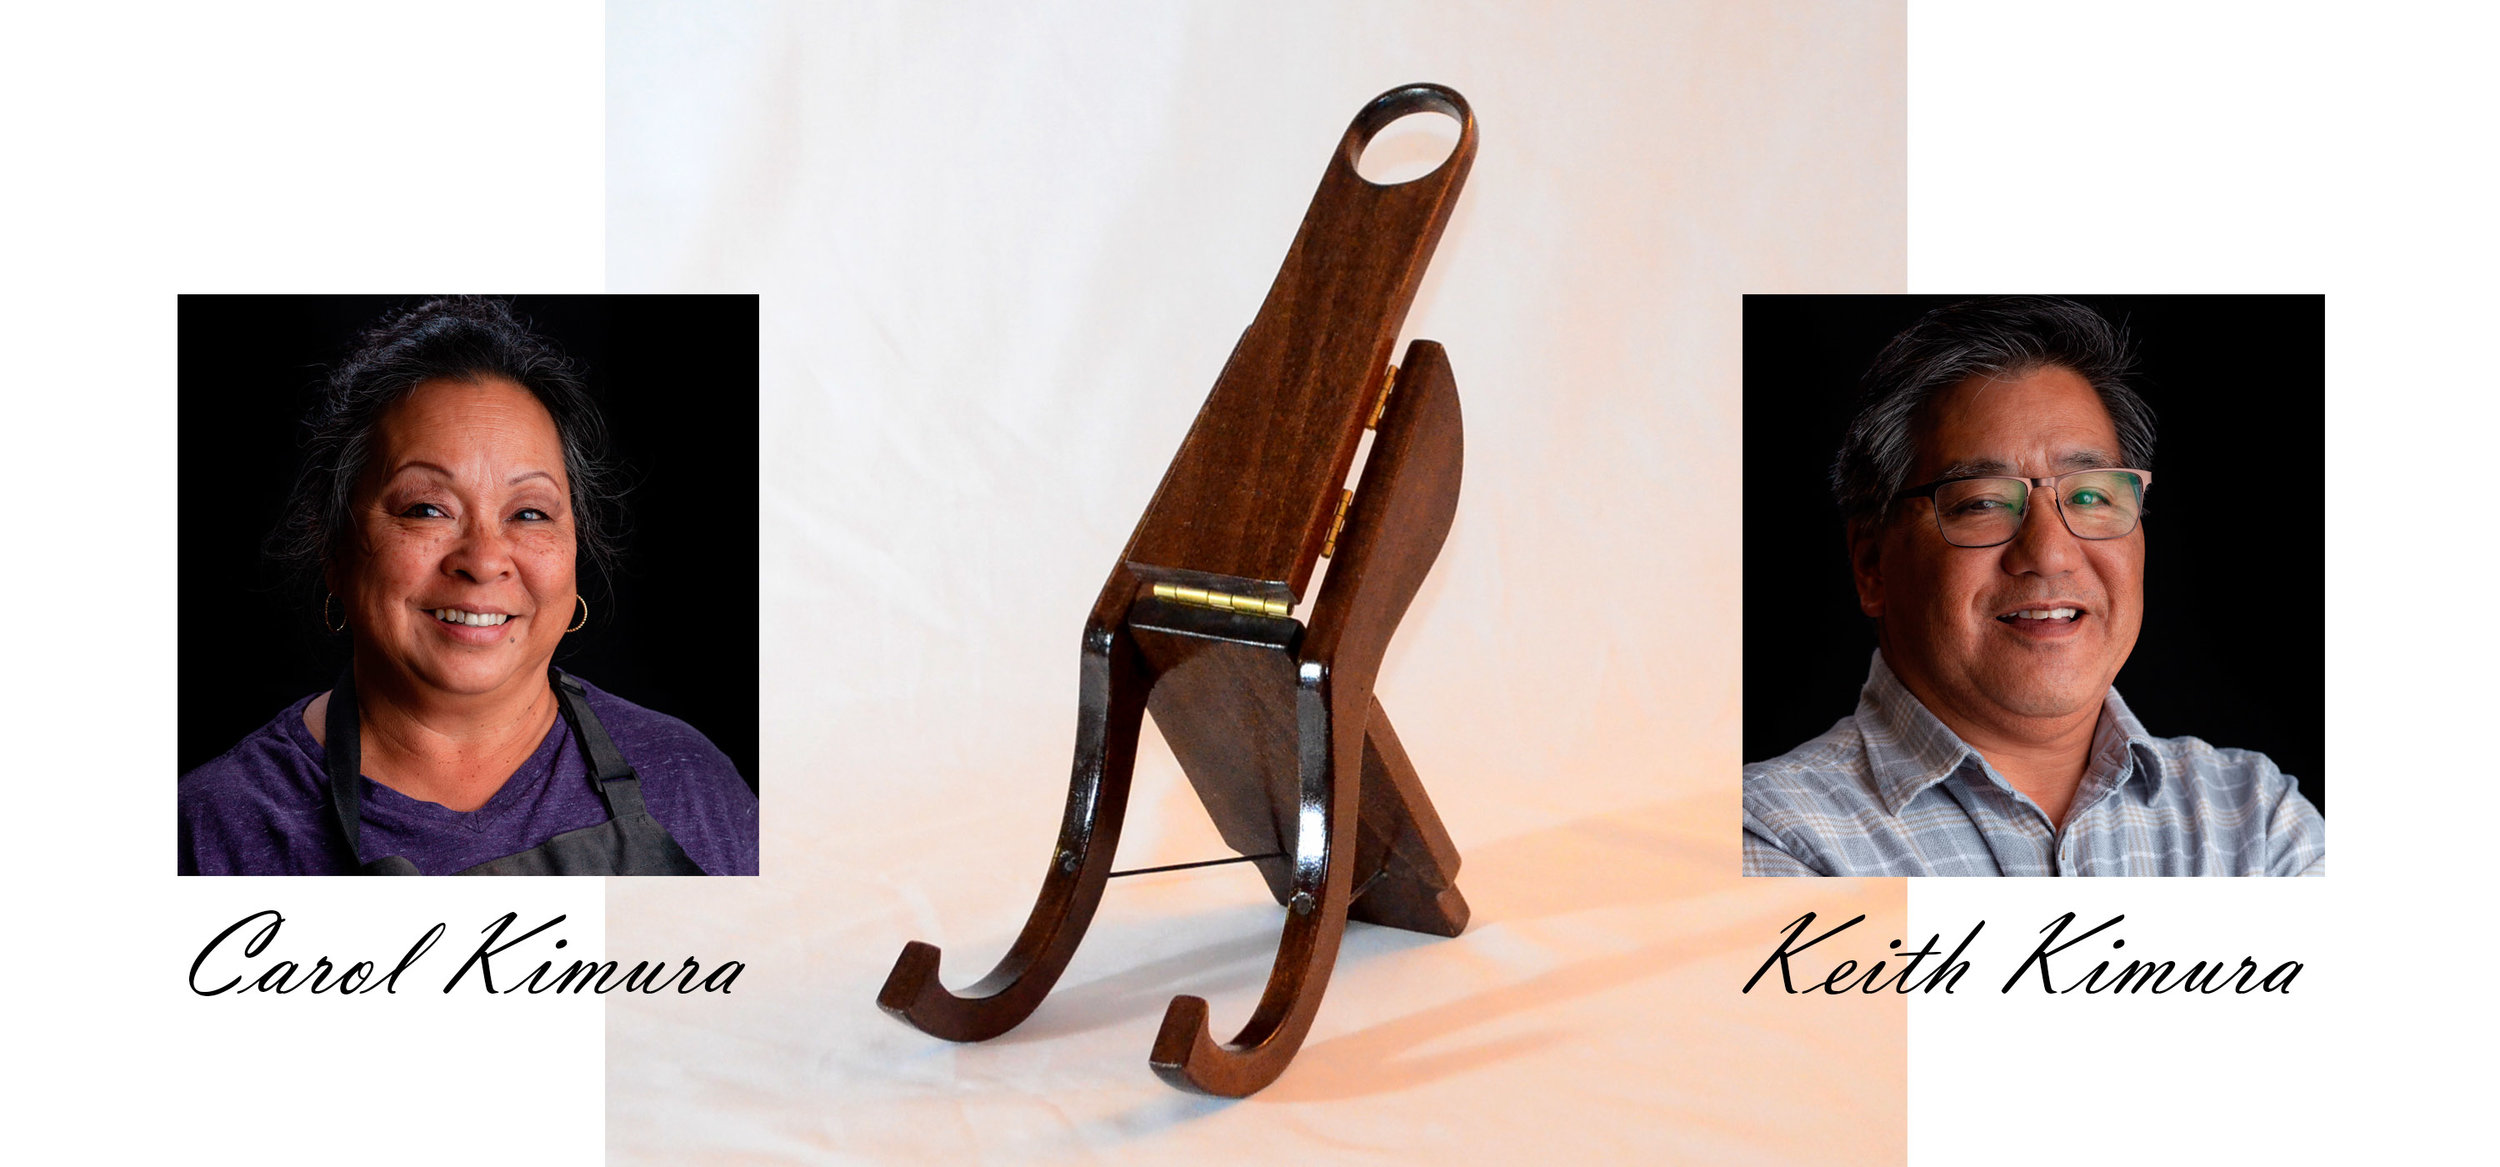 Carol & Keith Kimura, makers of K-Stand and the hand made Christmas present that started it all. (portrait photos courtesy Jesse Koester)